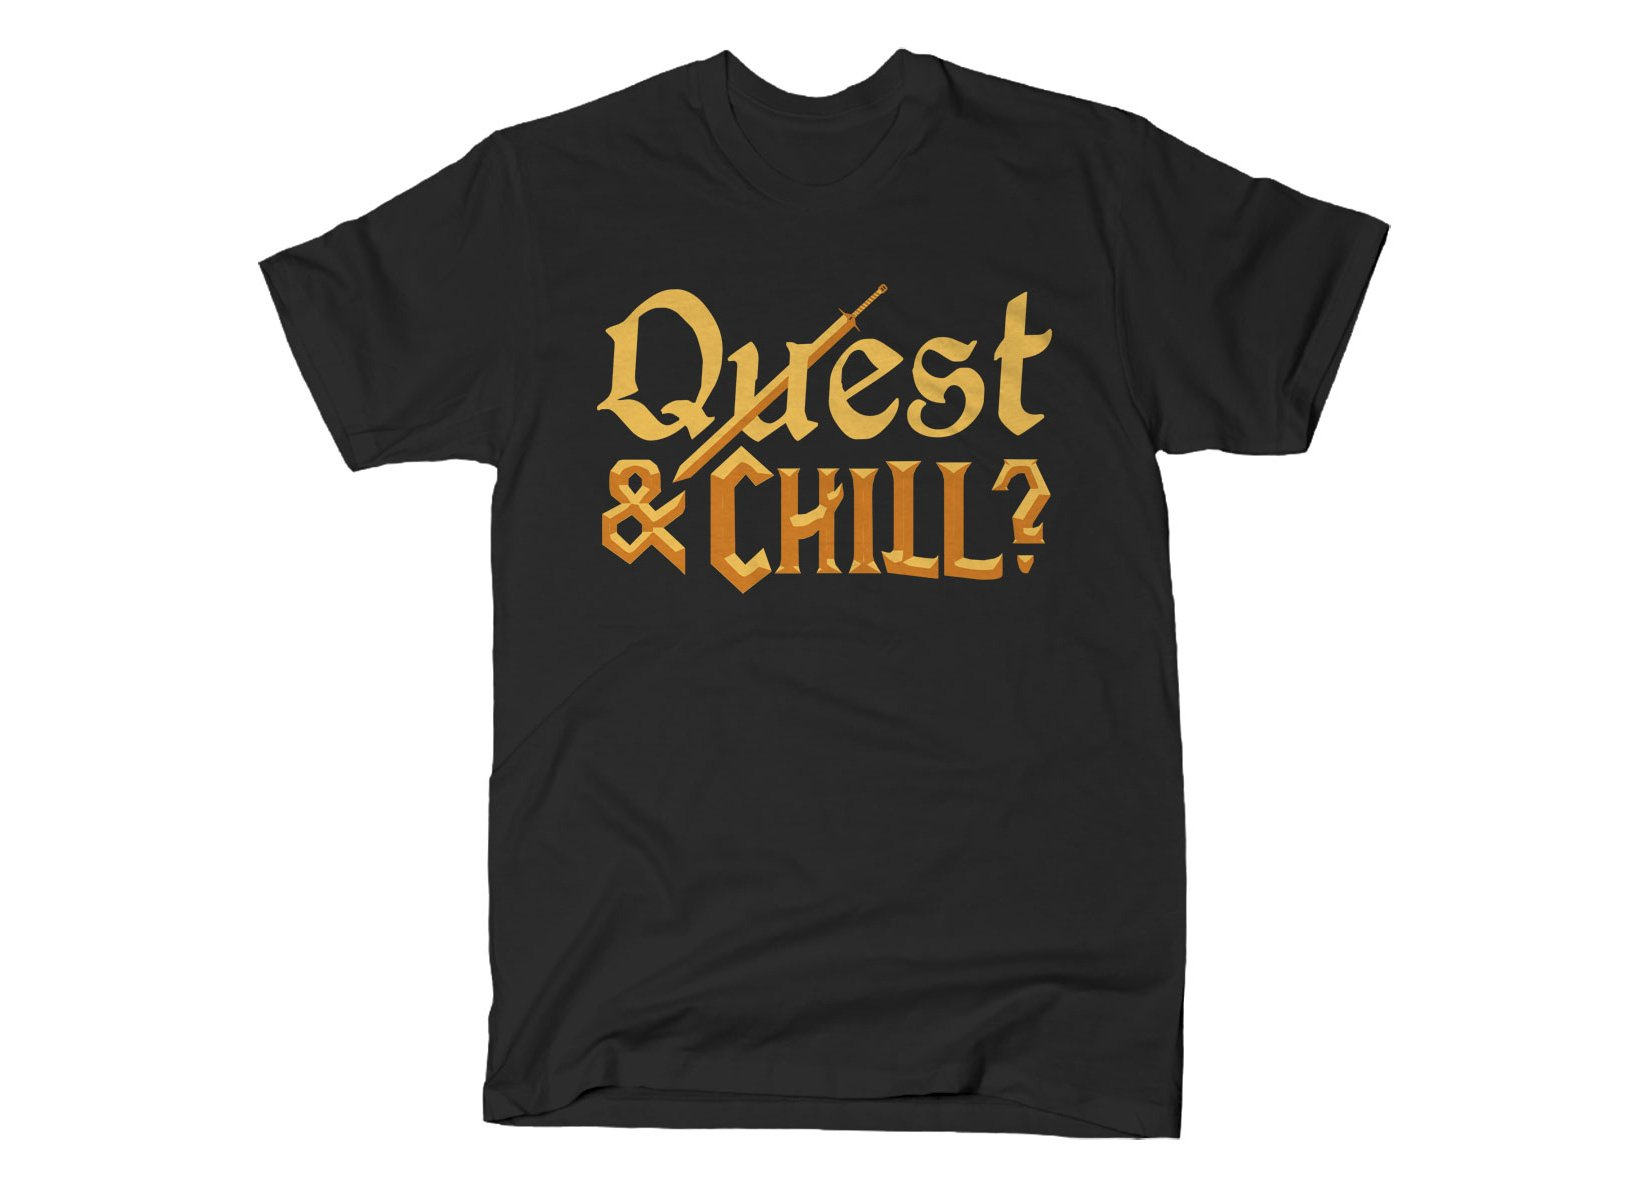 Quest & Chill on Mens T-Shirt